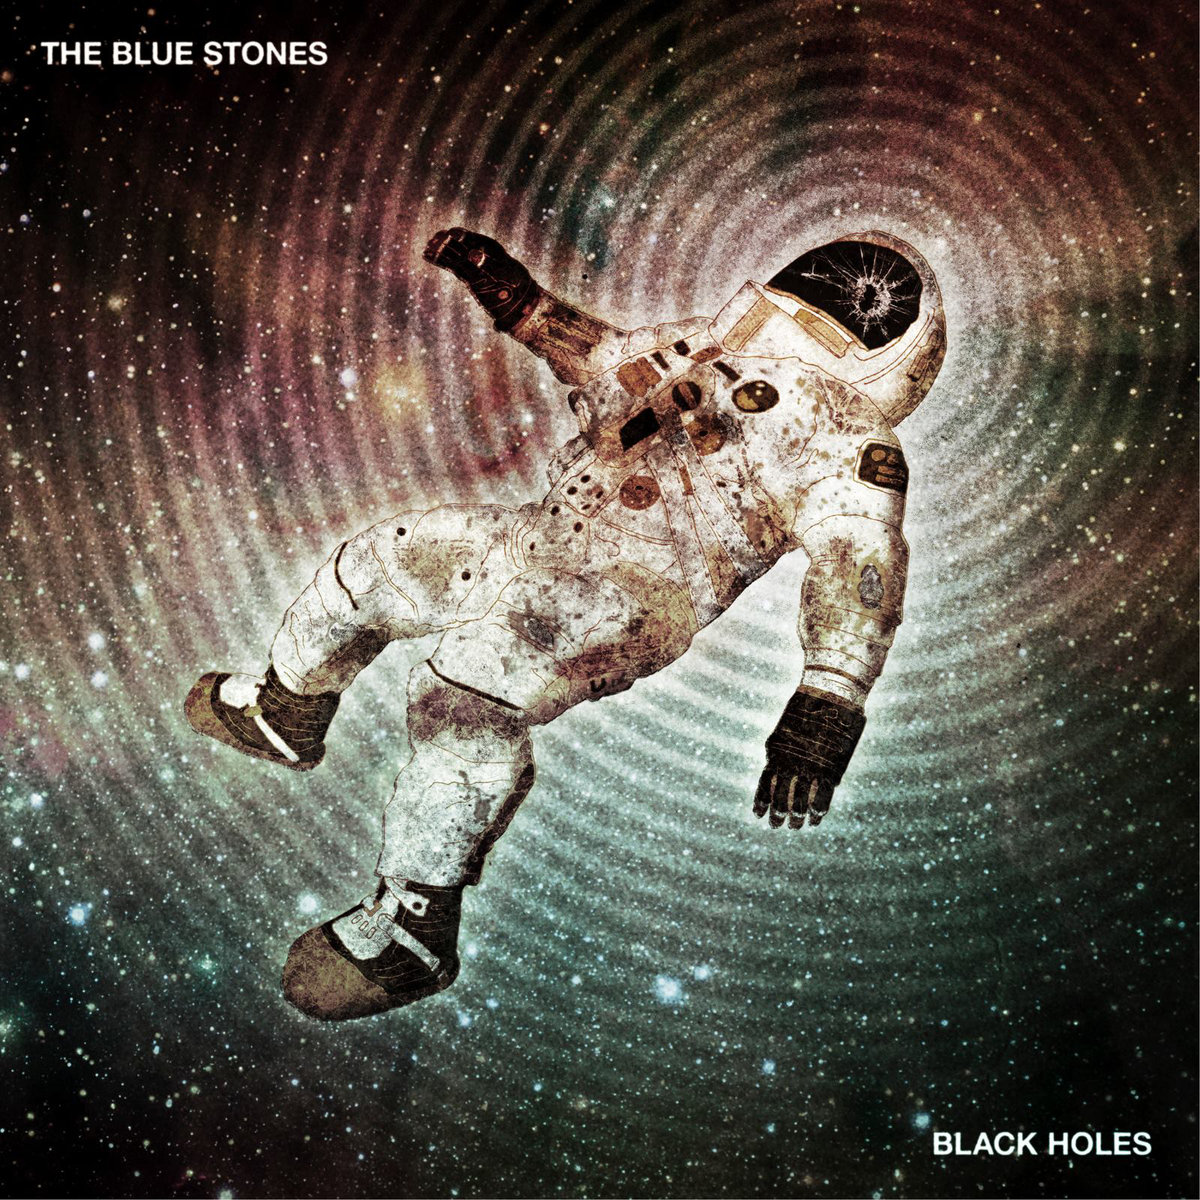 The Blue Stones - Black Holes (Solid Ground) @ 'BLACK HOLES' album (alternative, blues)